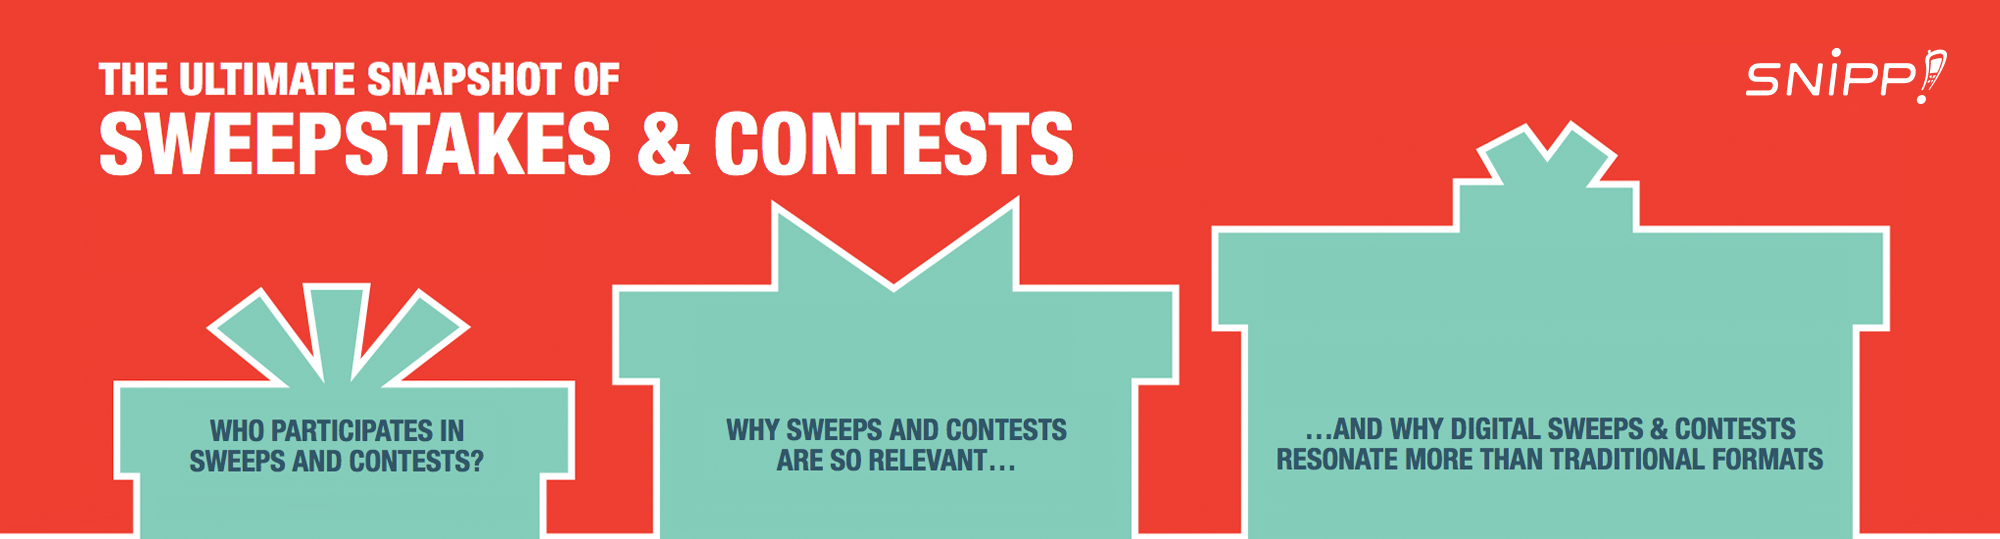 The Ultimate Snapshot Of Sweepstakes & Contests